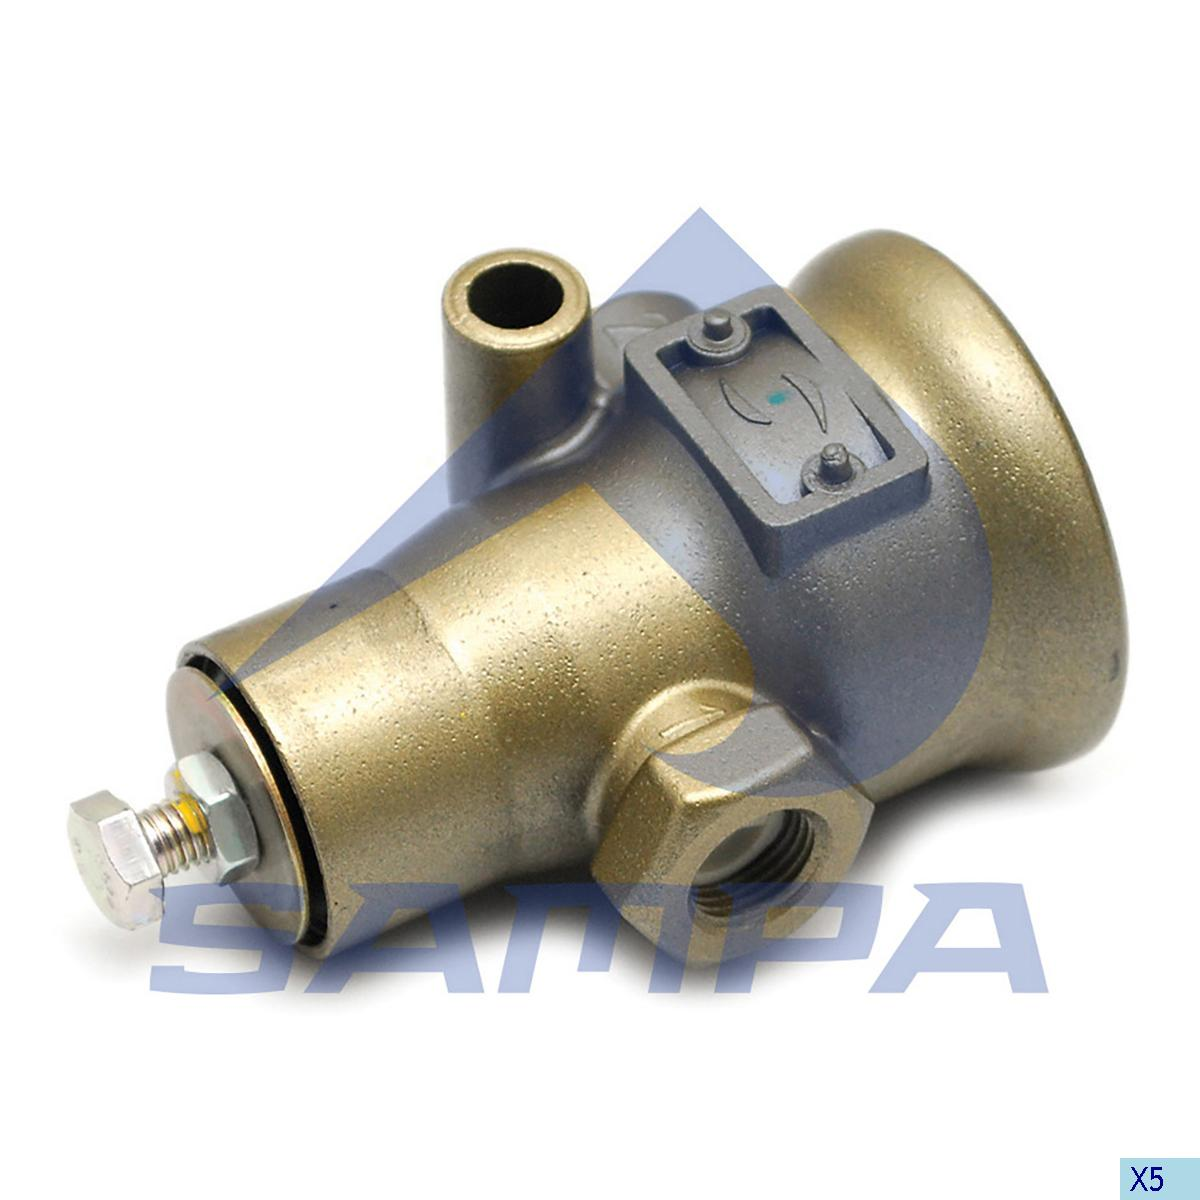 Pressure Control Valve, Scania, Compressed Air System